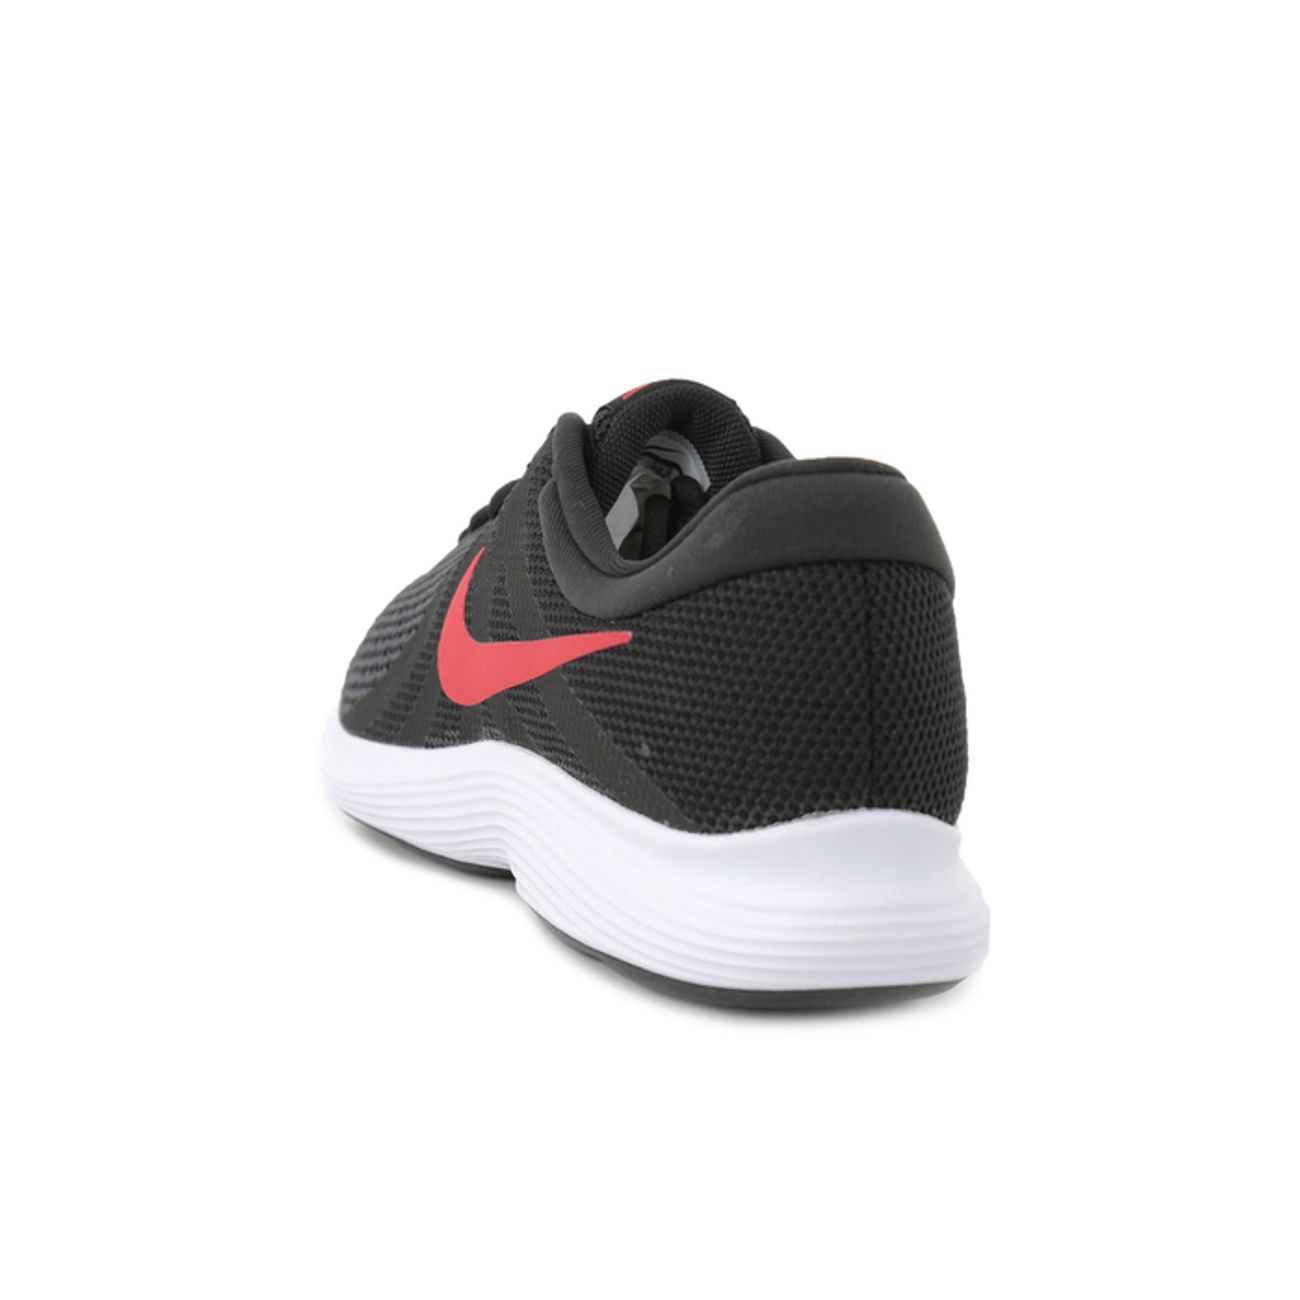 best service e5dd9 1fb67 ... CHAUSSURES BASSES NIKE REVOLUTION 4 M